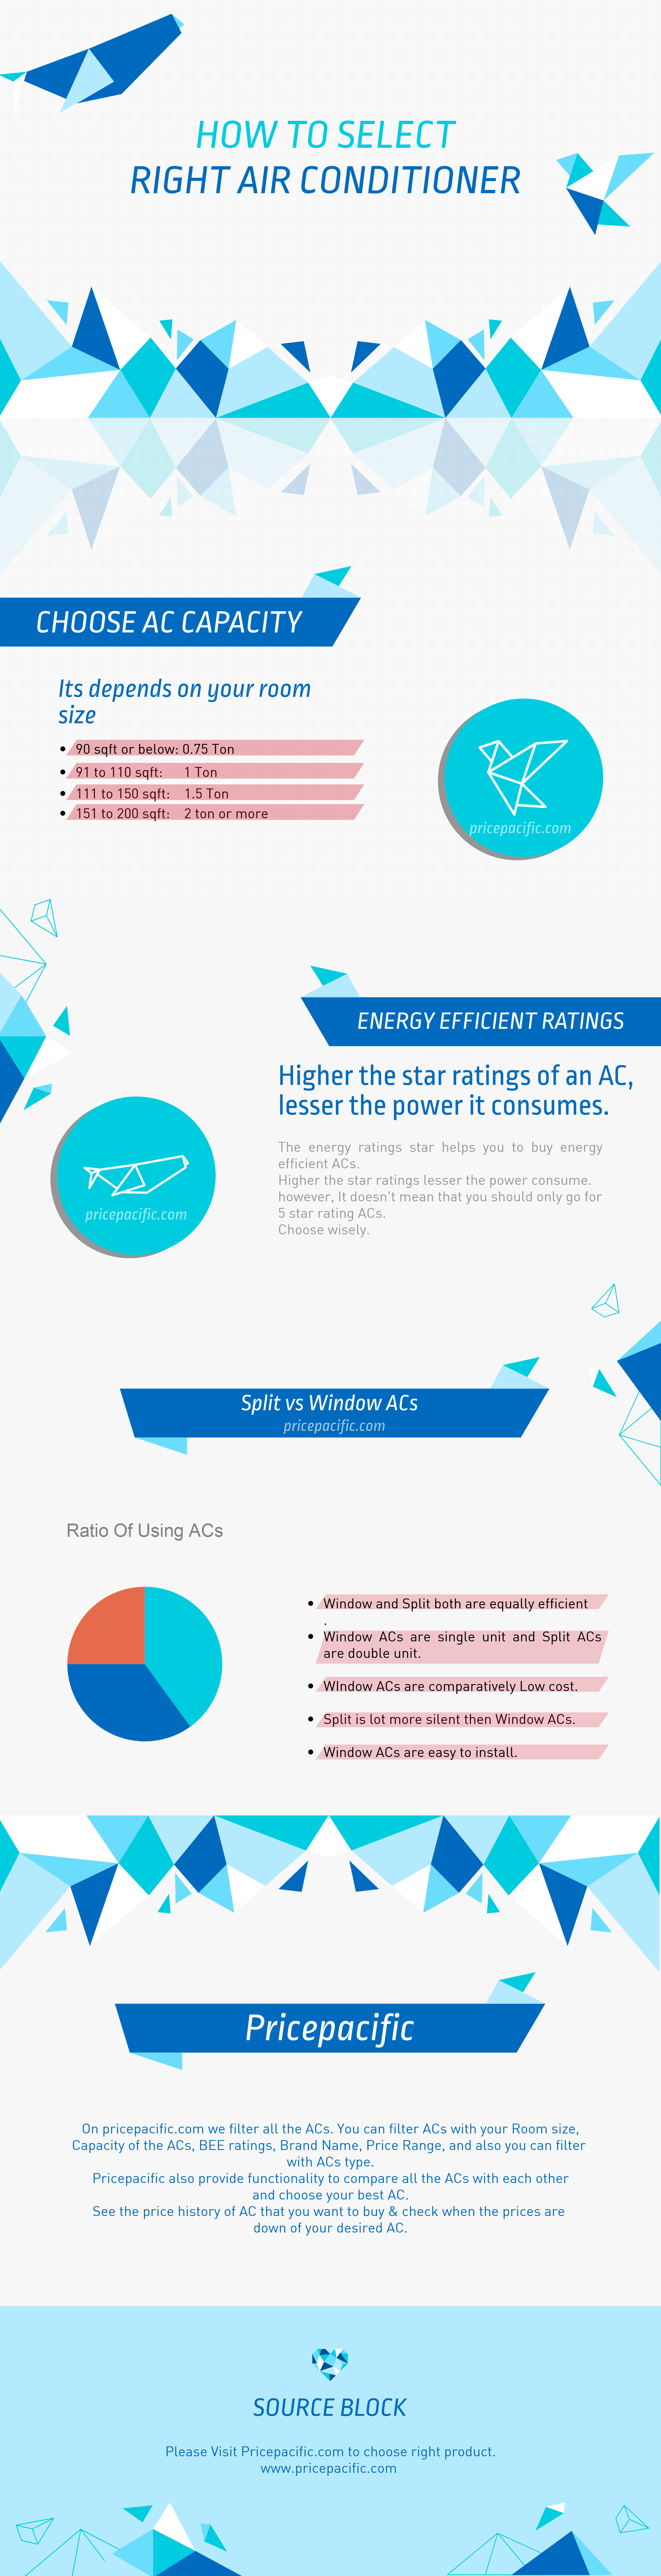 How to choose right air conditioner 1 Air conditioner